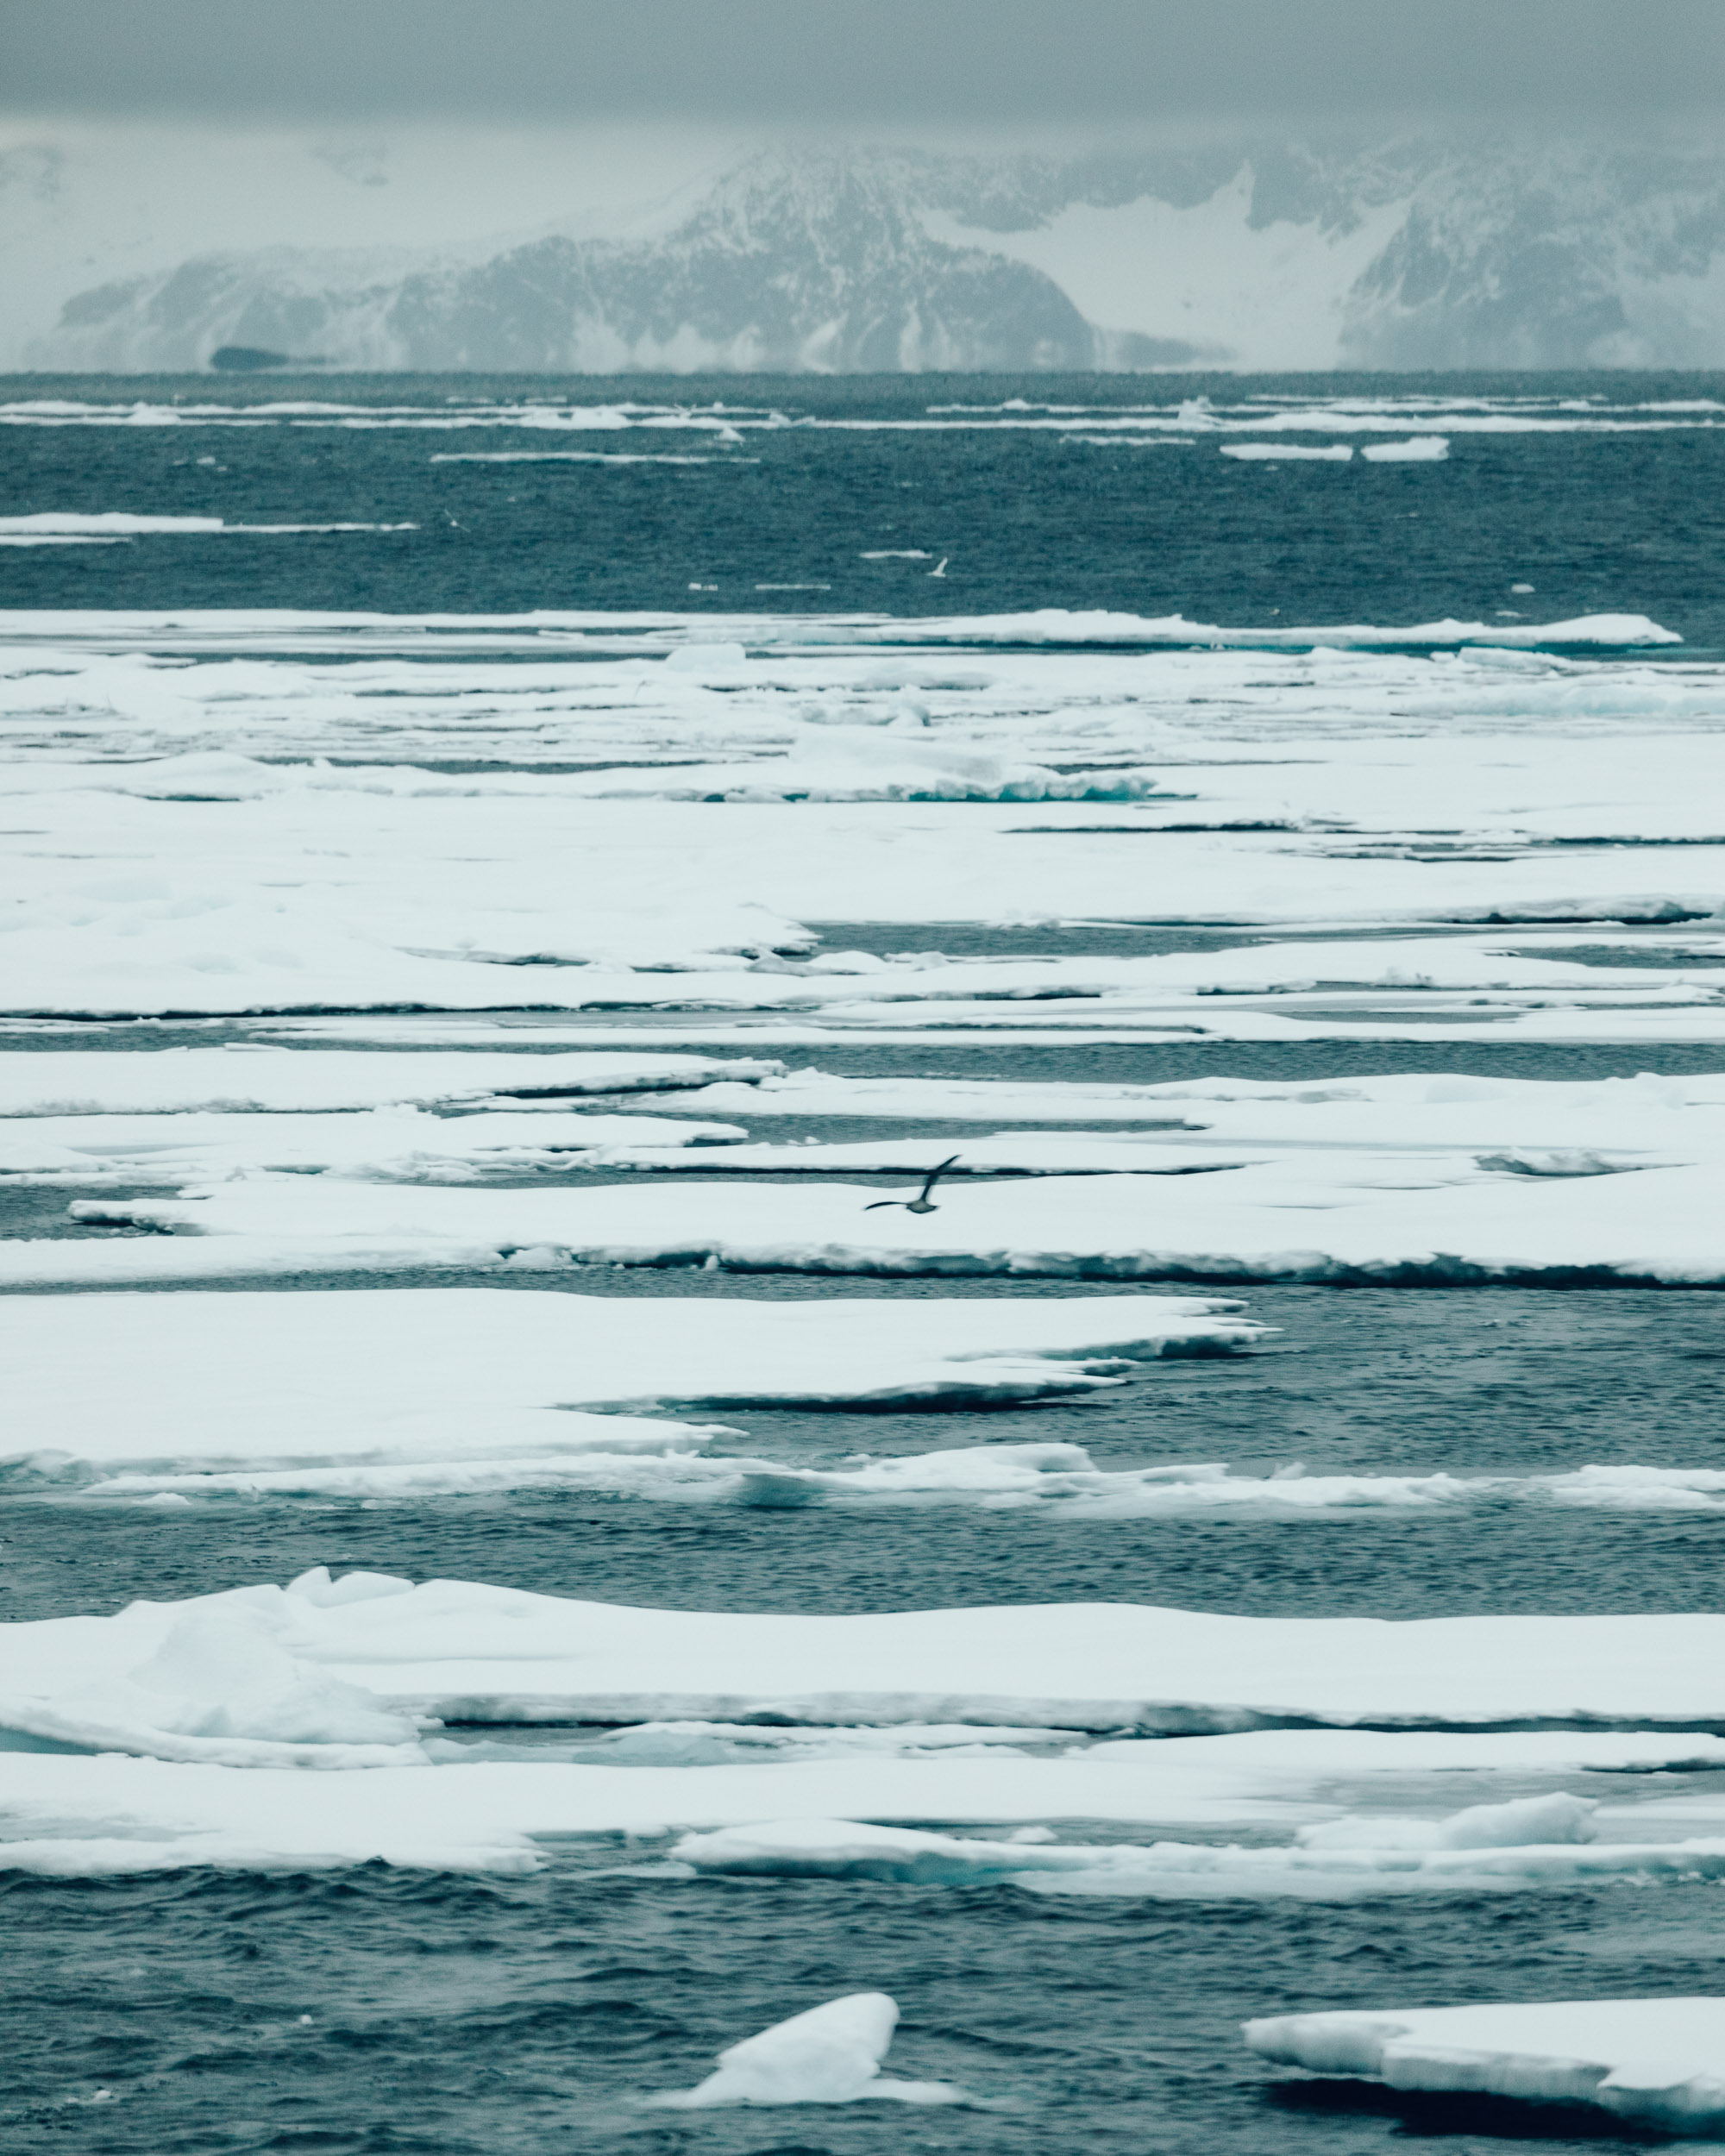 Ice floats in the arctic ocean of Svalbard via Find Us Lost